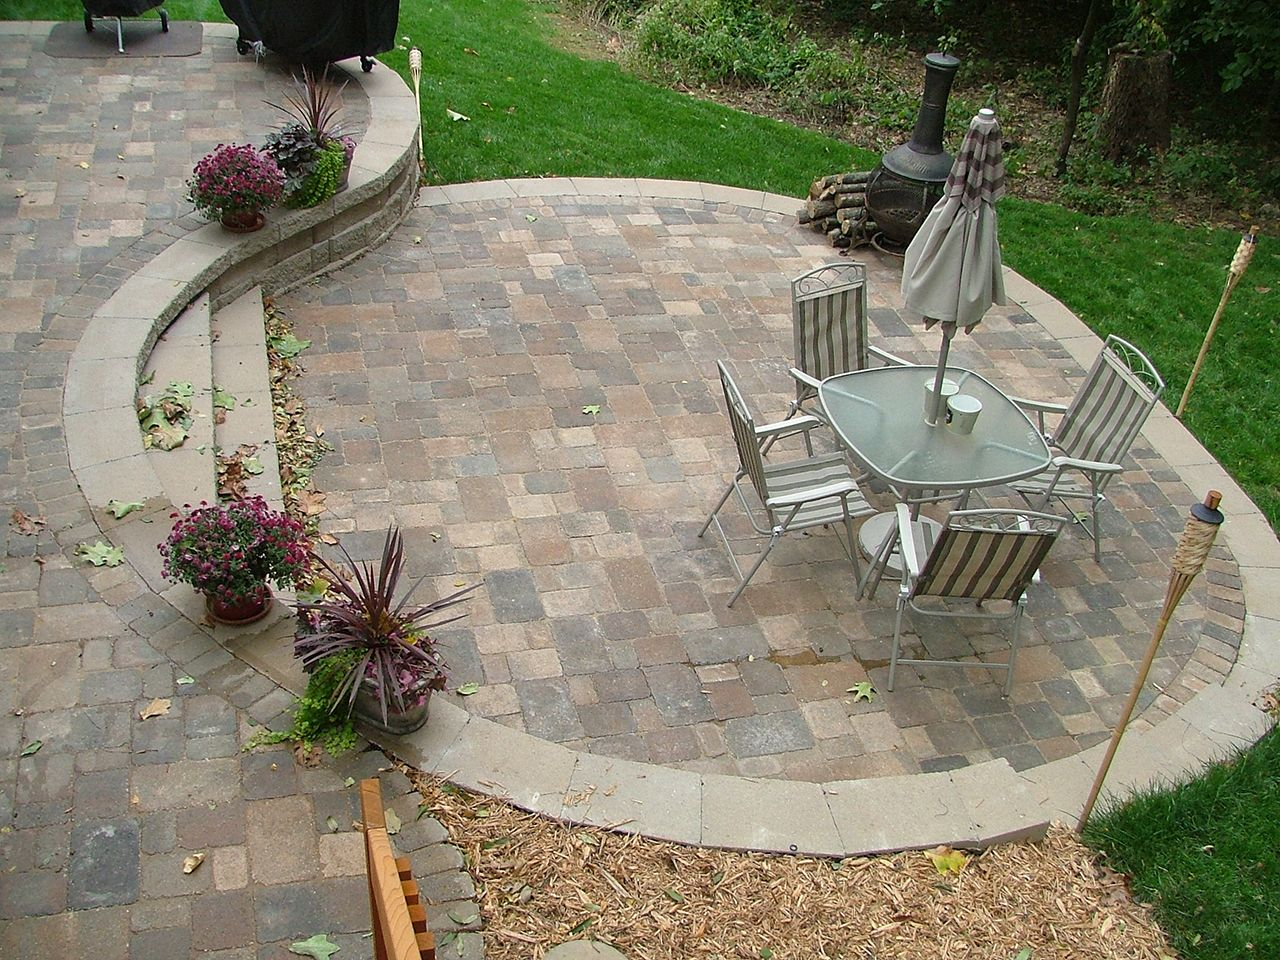 17 best images about patio on pinterest fire pits brick patios and patio ideas patio - Paver Design Ideas